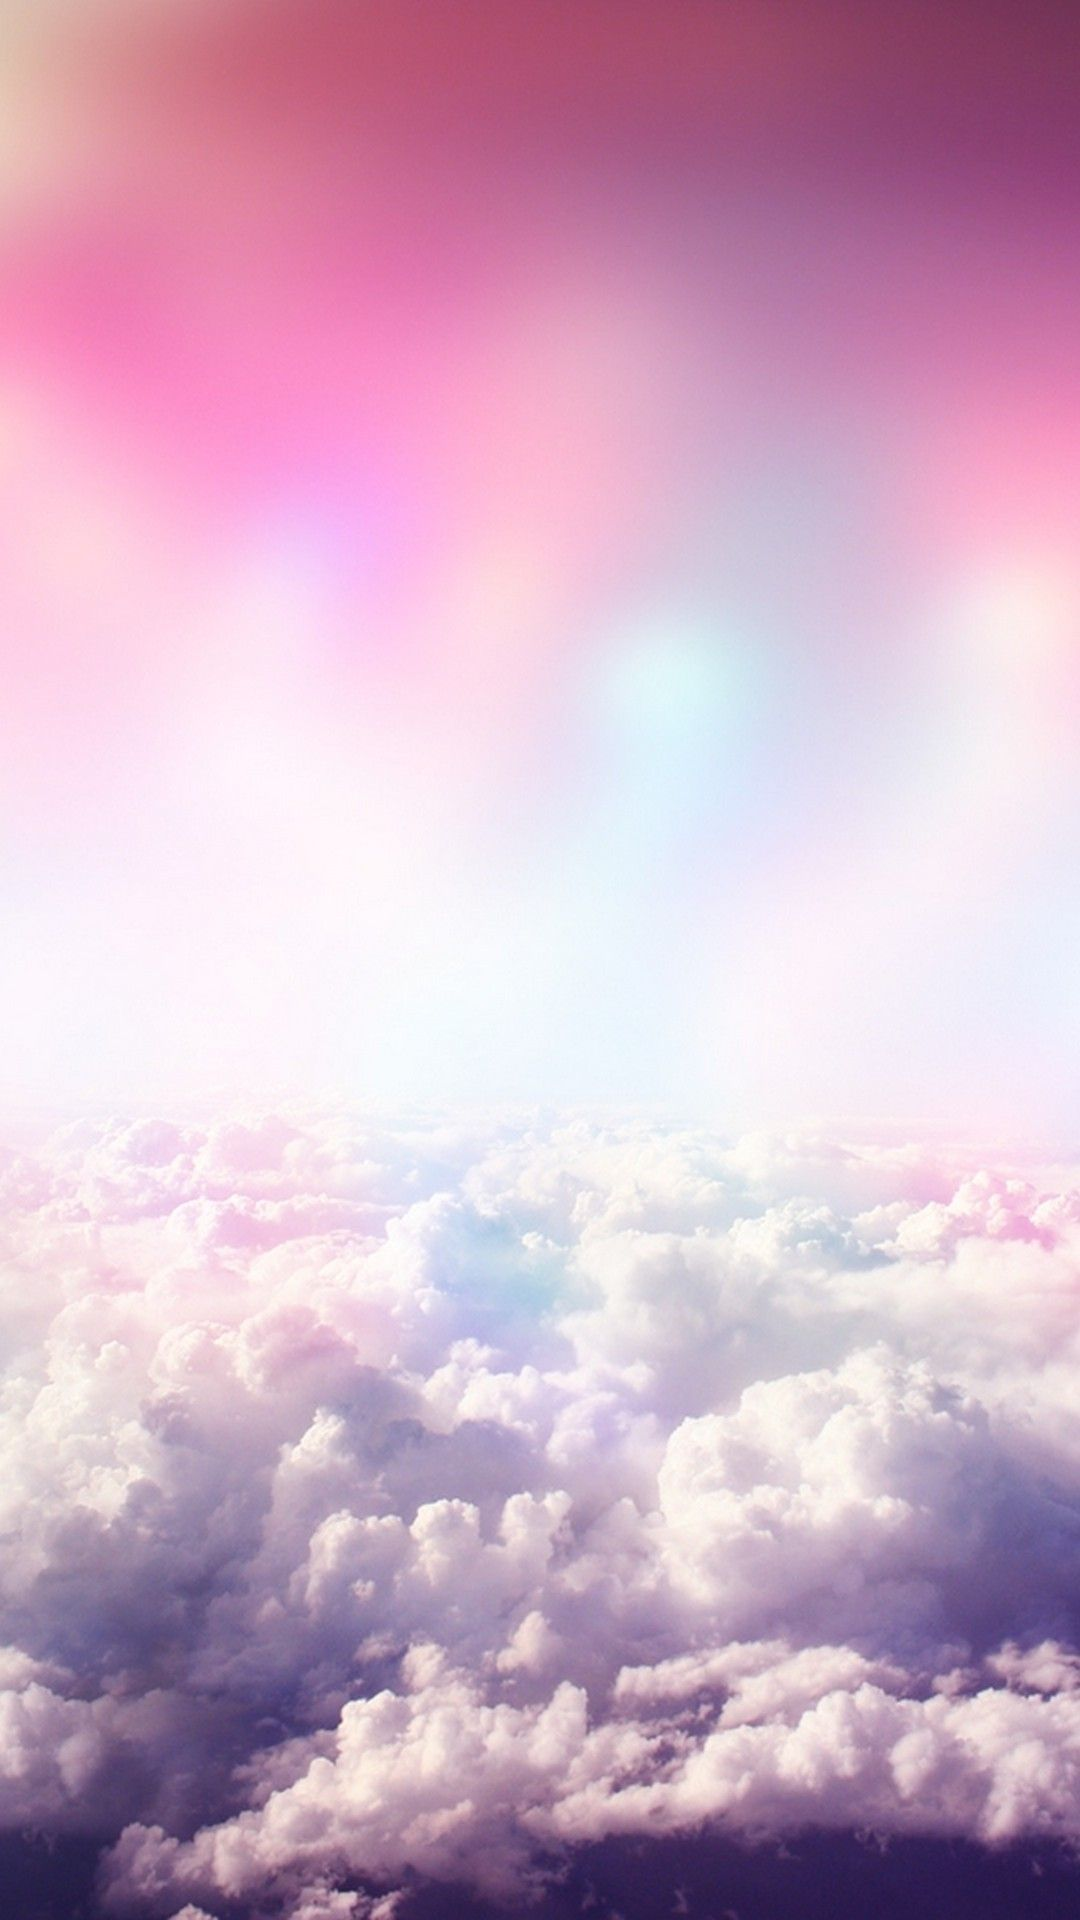 Cloud Cute Girly Wallpaper Iphone Wallpaper Iphone Cute Iphone Wallpaper Girly Baby Pink Wallpaper Iphone